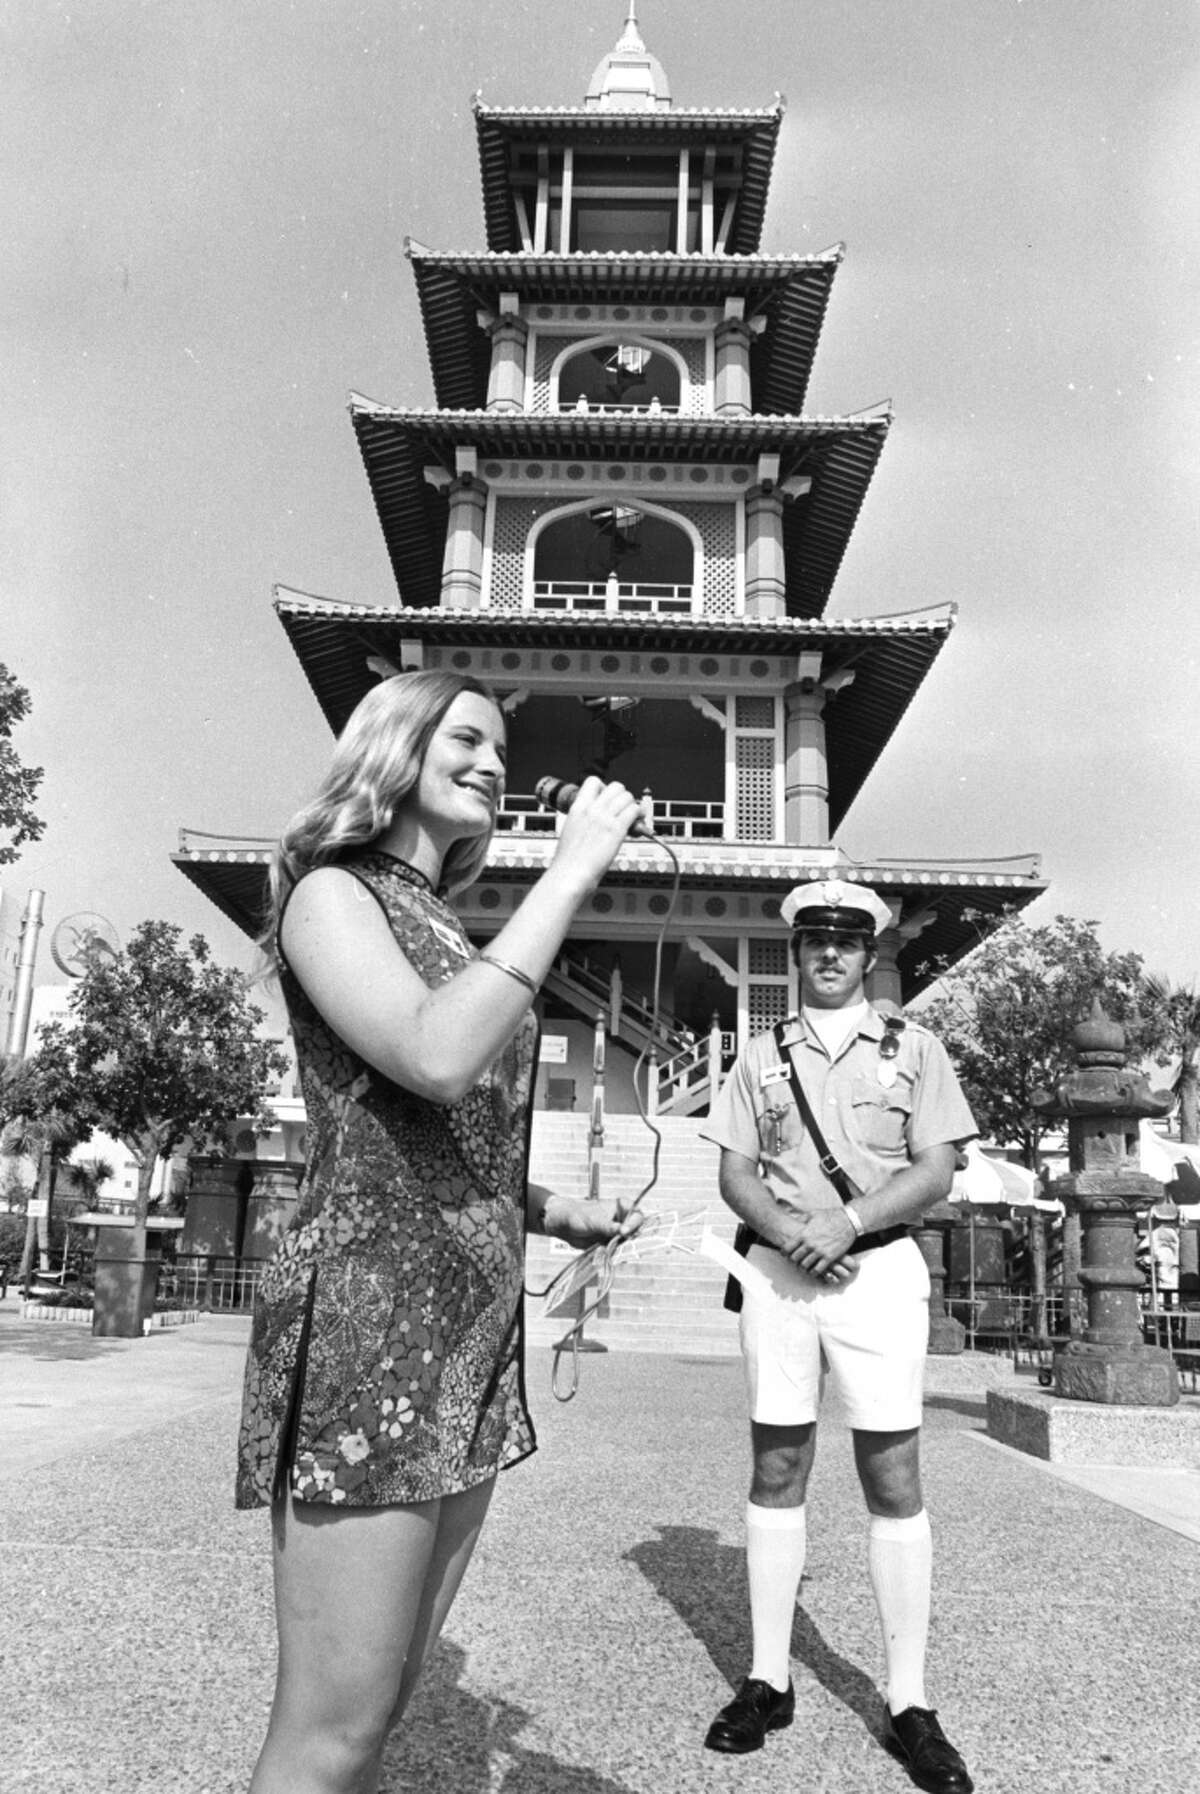 PHOTO FILED: BUSCH GARDENS-HOUSTON. 07/1972 - College students work many of the jobs at Busch Gardens. Security guard Michael McKinney is a Texas Aggie and hostess Sharon Wichlep attends St. Mary's in San Antonio. Orie Collins / Houston Chronicle HOUCHRON CAPTION (07/26/1972): TEXAS AGGIE MICHAEL MCKINNEY IS BUSCH GARDENS SECURITY GUARD. Pretty Gardens Hostess is Sharon Wichlep, Who Attends St. Mary's in San Antonio.